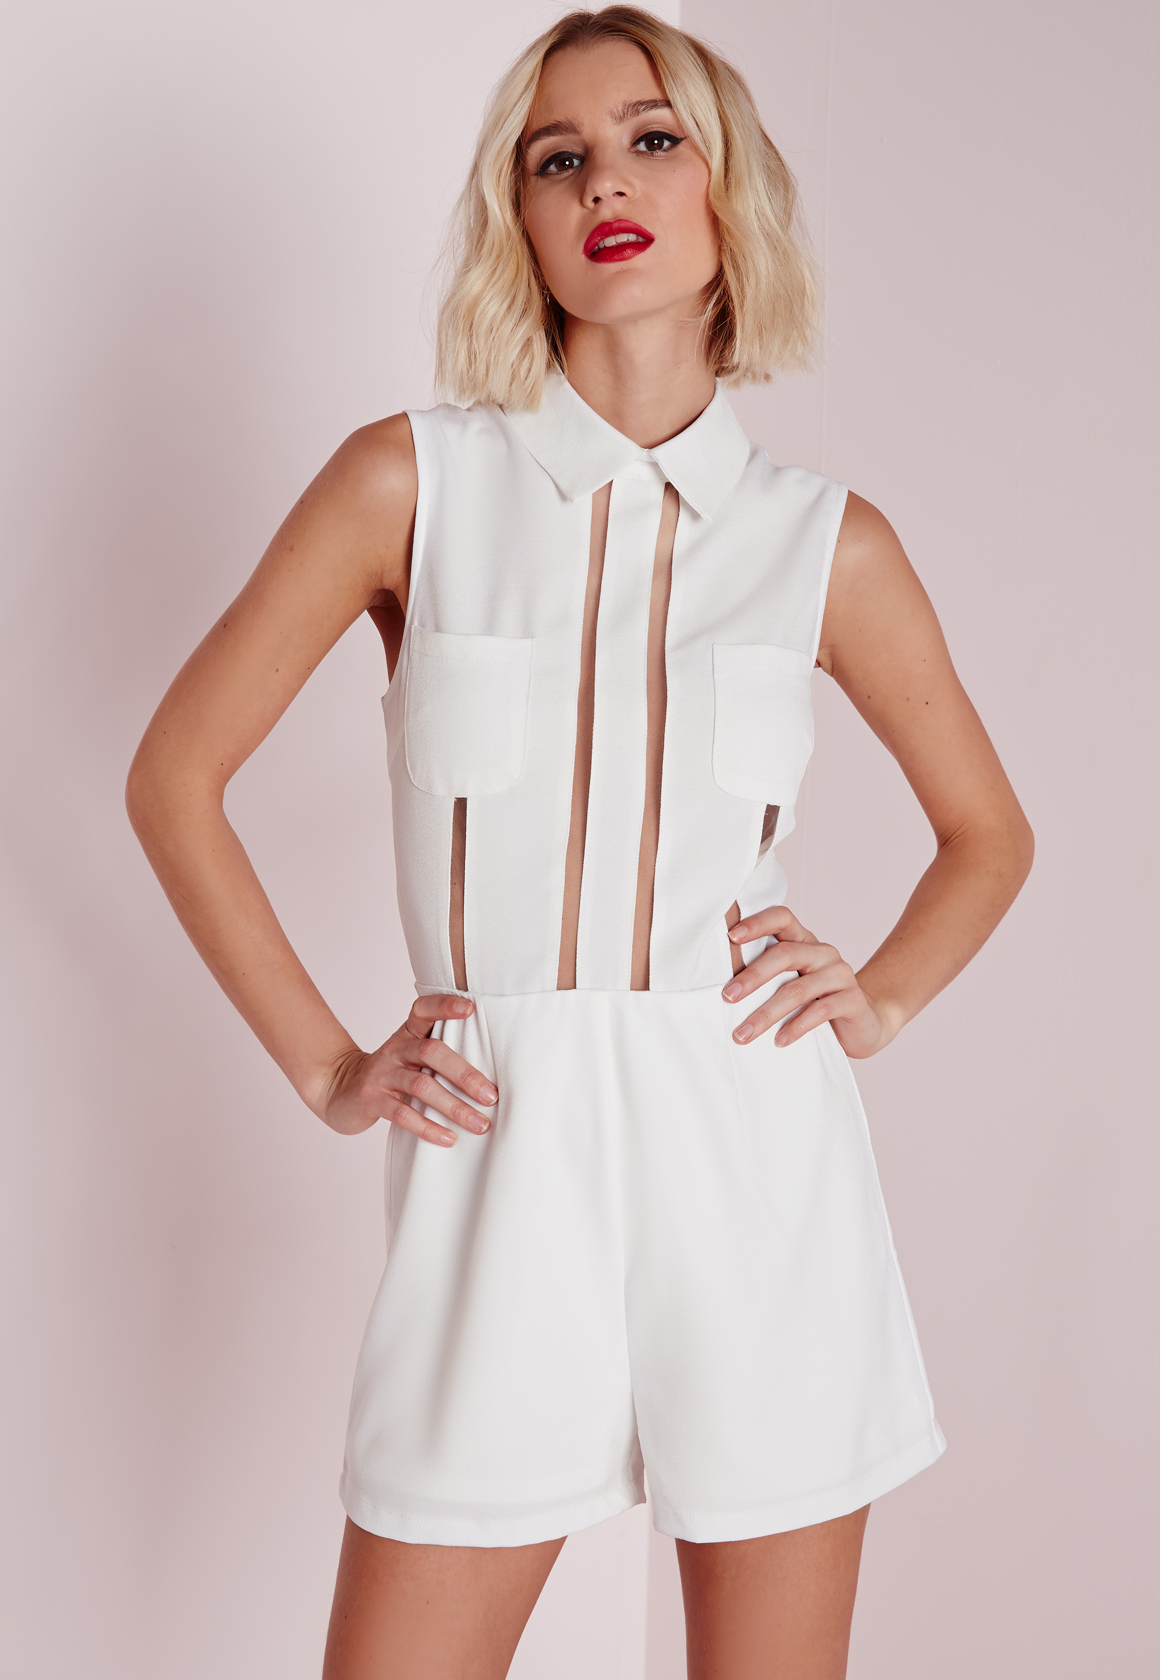 5b90915b353 Lyst - Missguided Mesh Stripe Collared Playsuit White in White